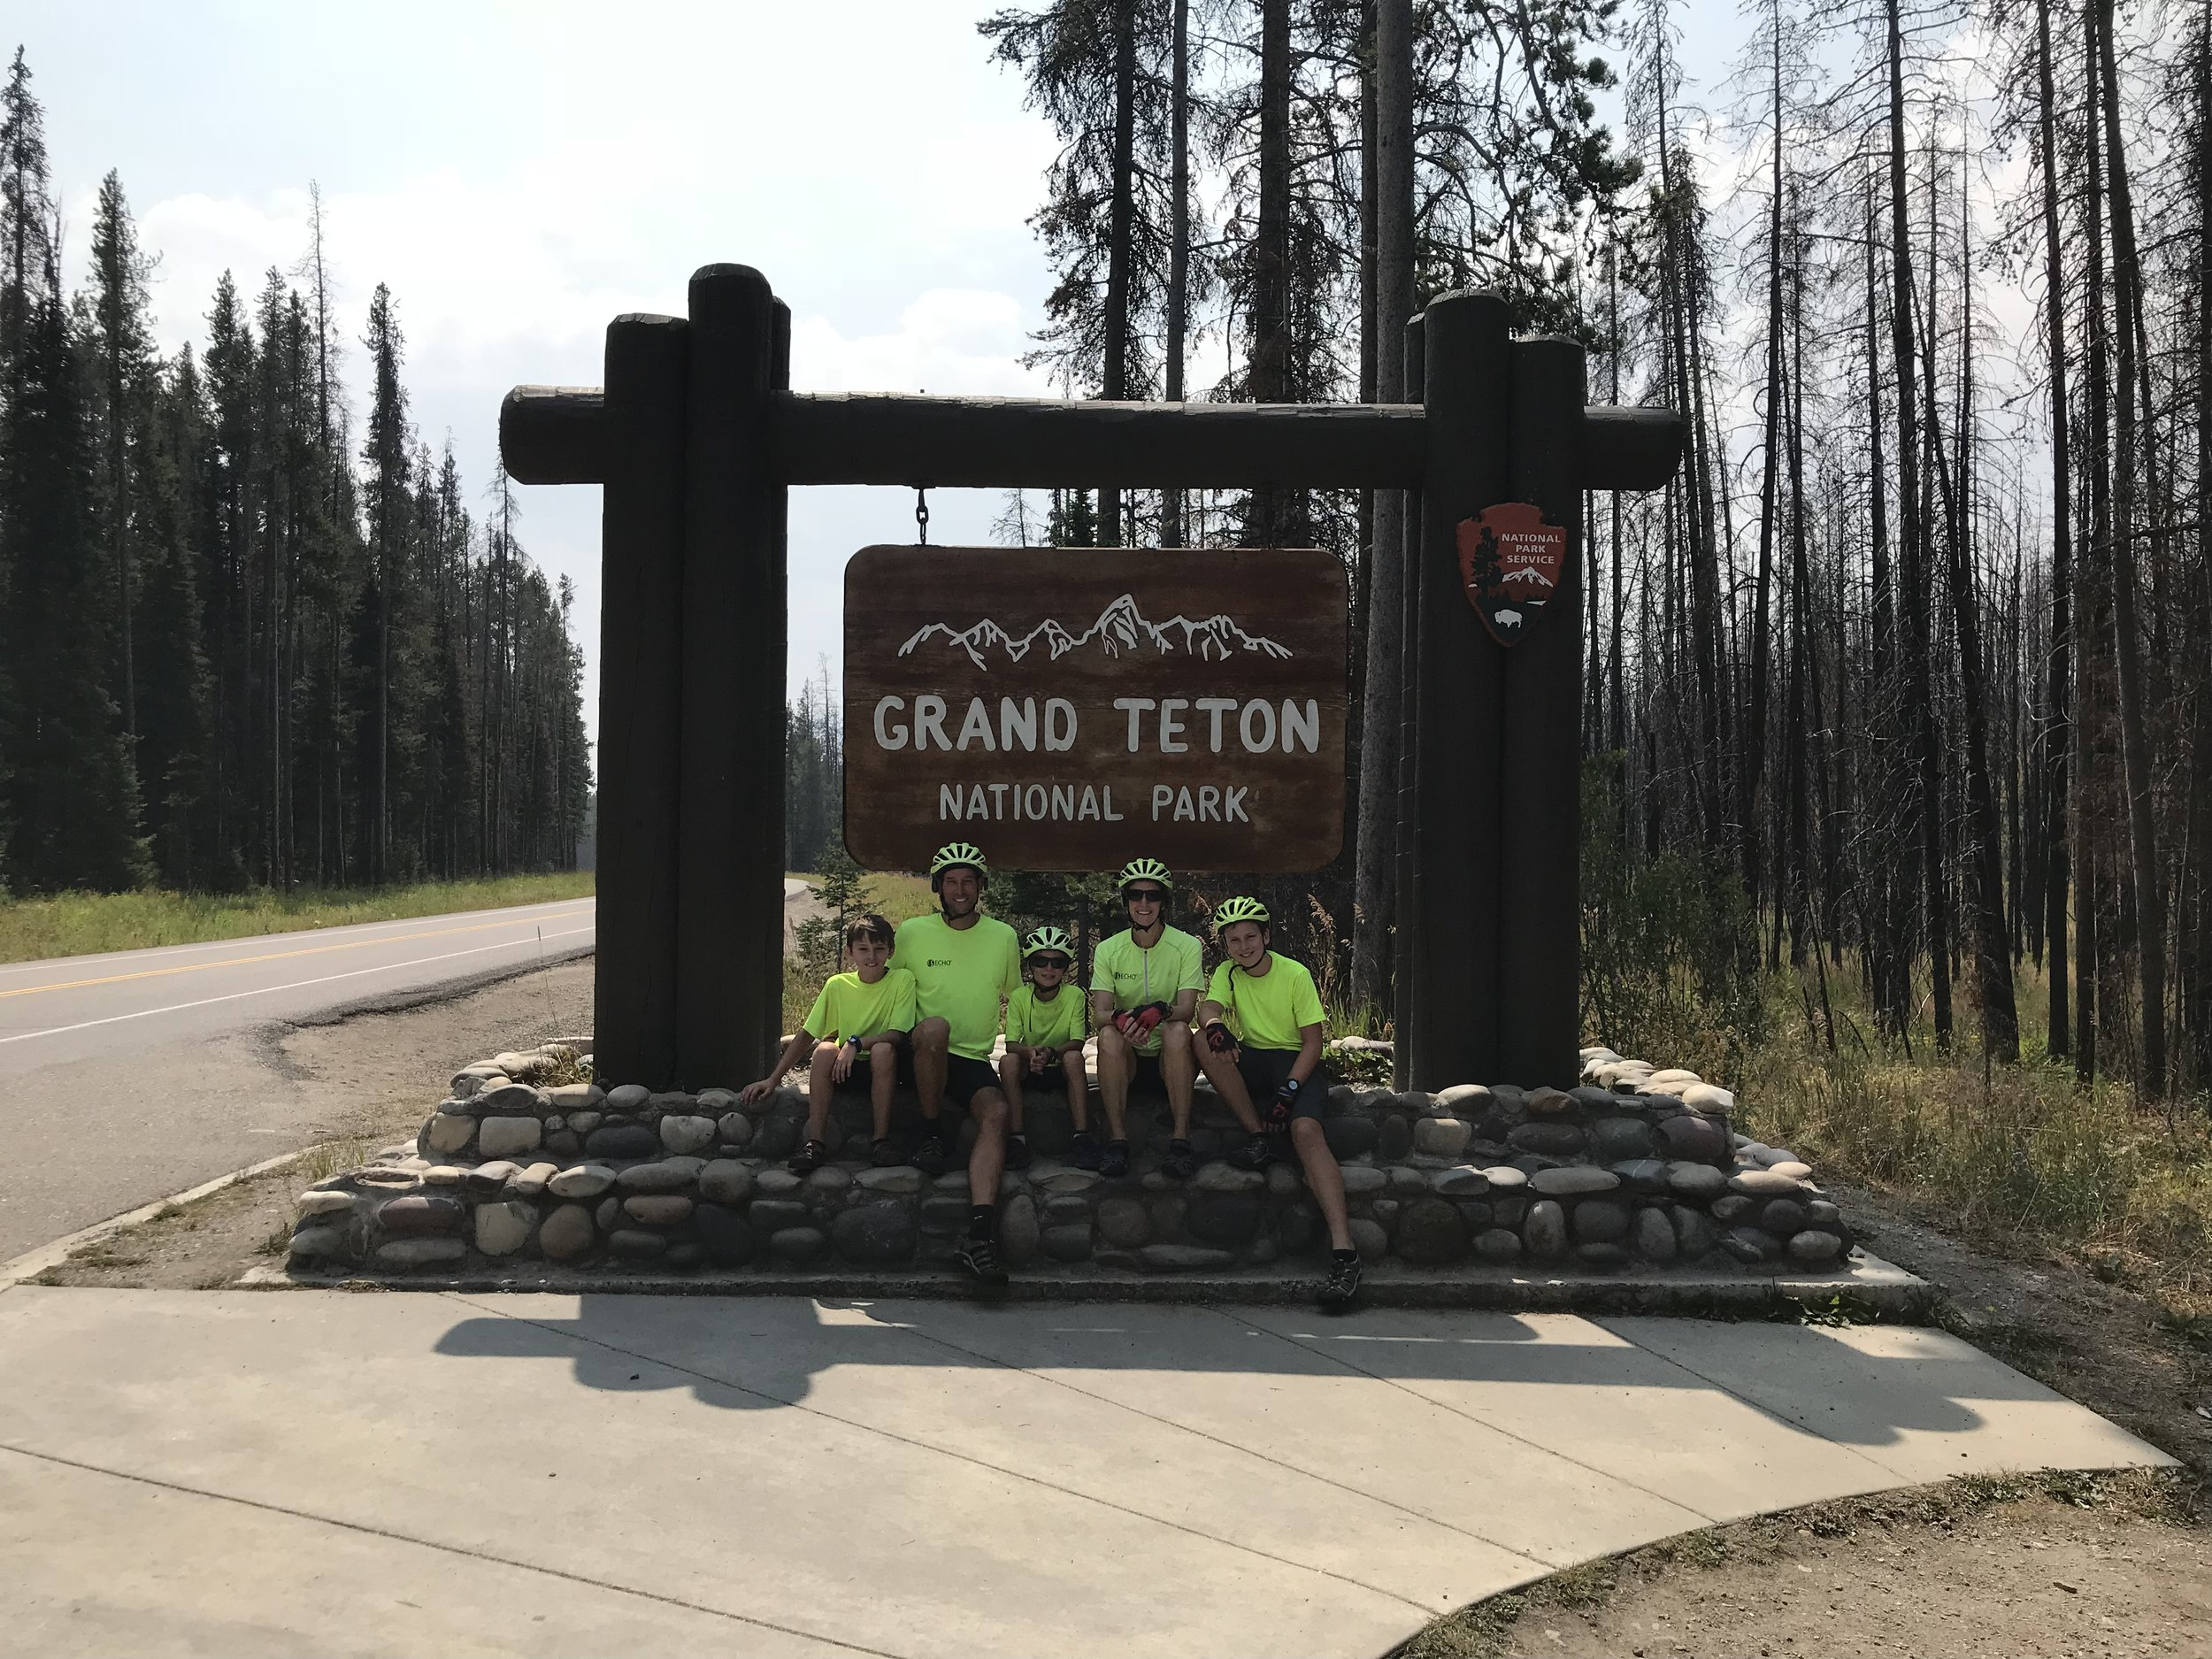 Wohoo! We made it to the Grand Tetons, signaling the beginning of the end of our adventure!